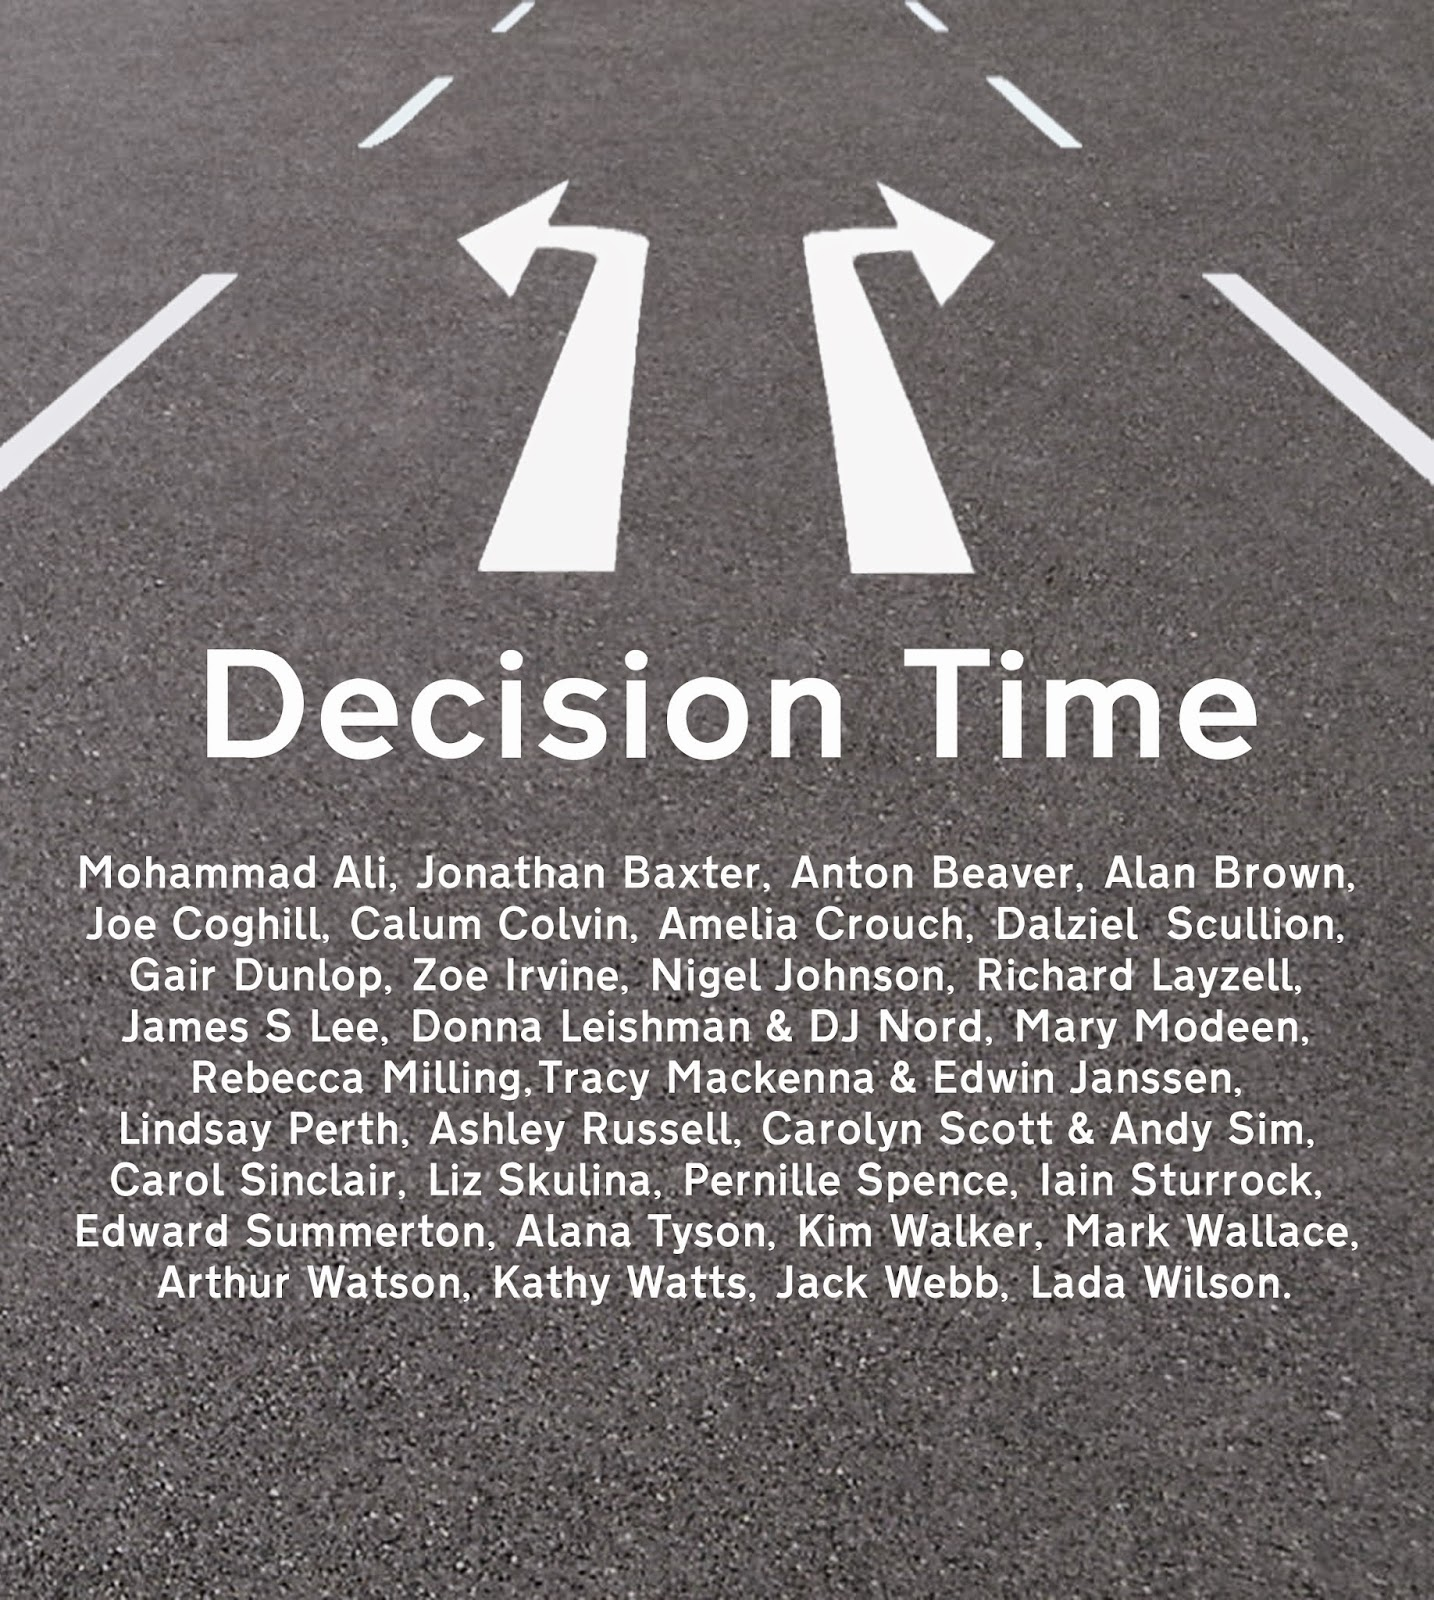 Decision Time image